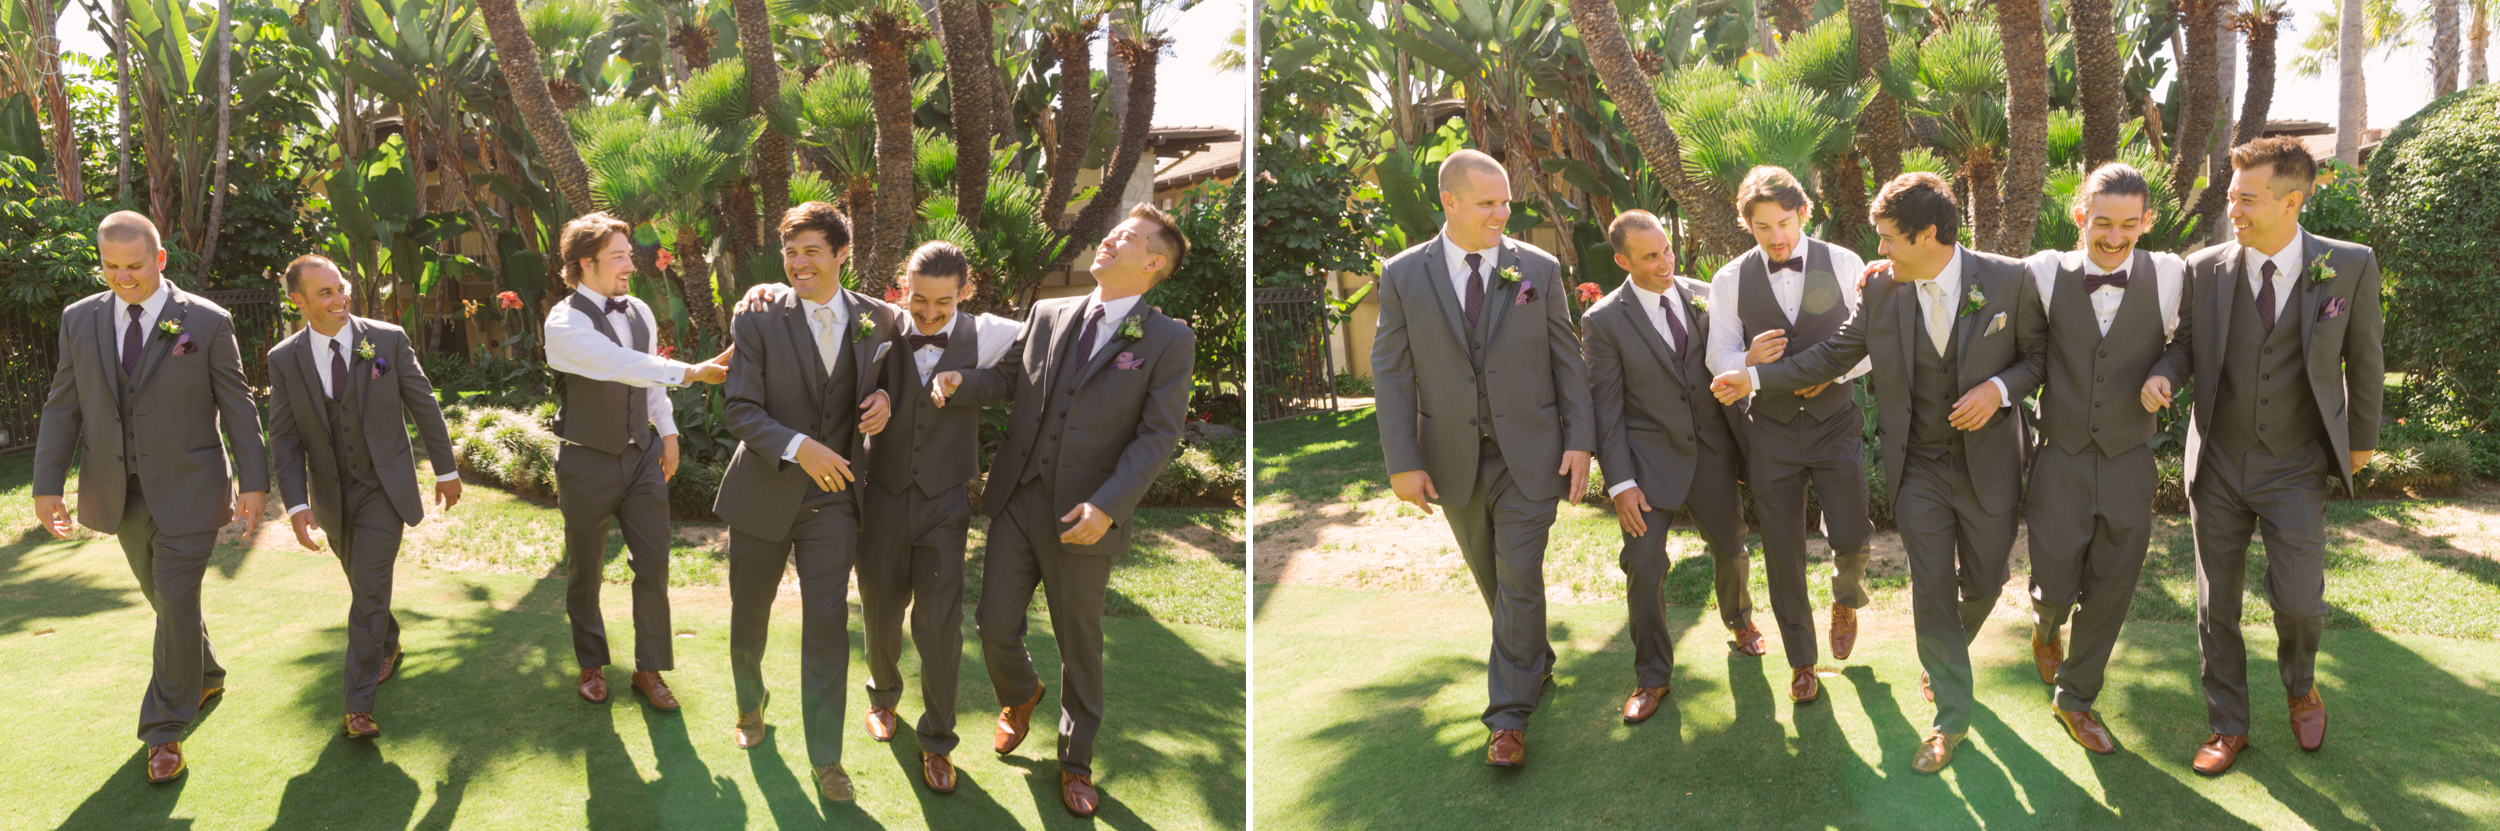 126San.diego.wedding.shewanders.photography.JPG